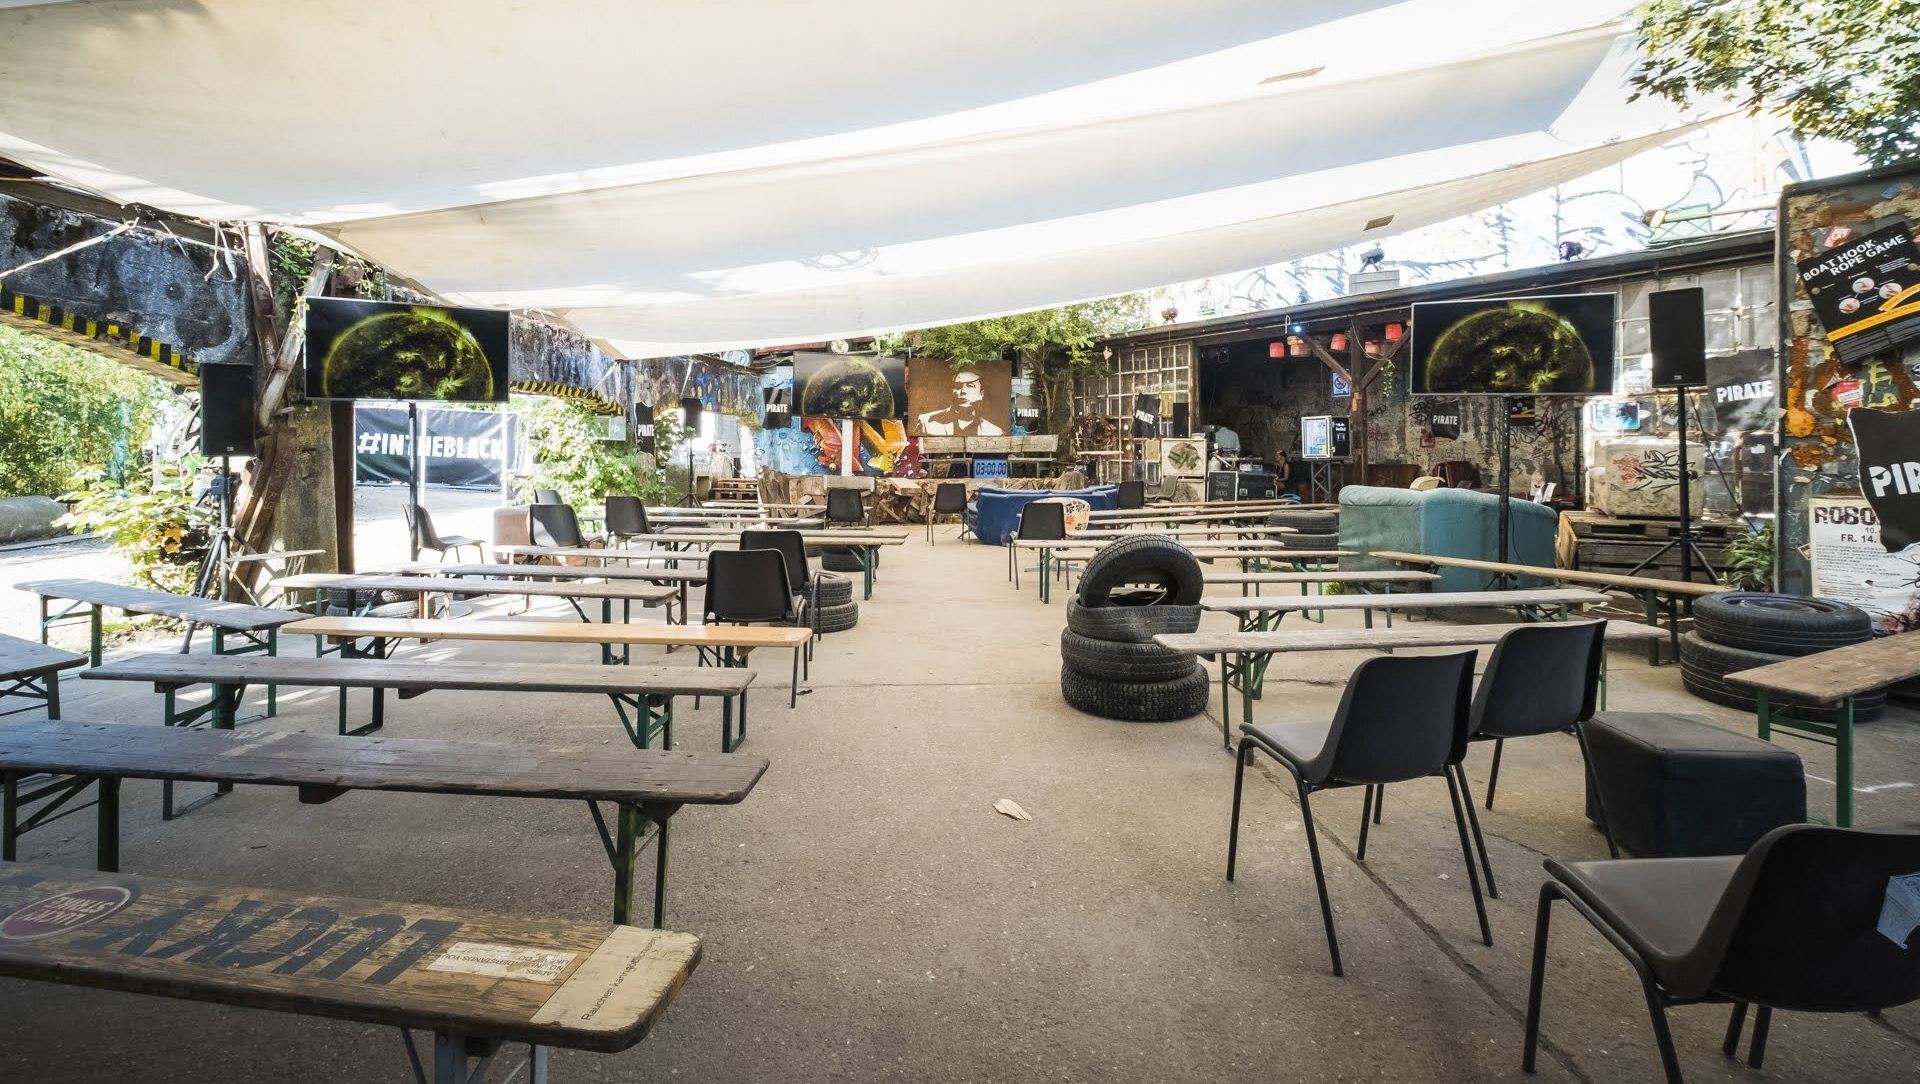 Empty Odonien - PIRATE Summit 2020 postponed